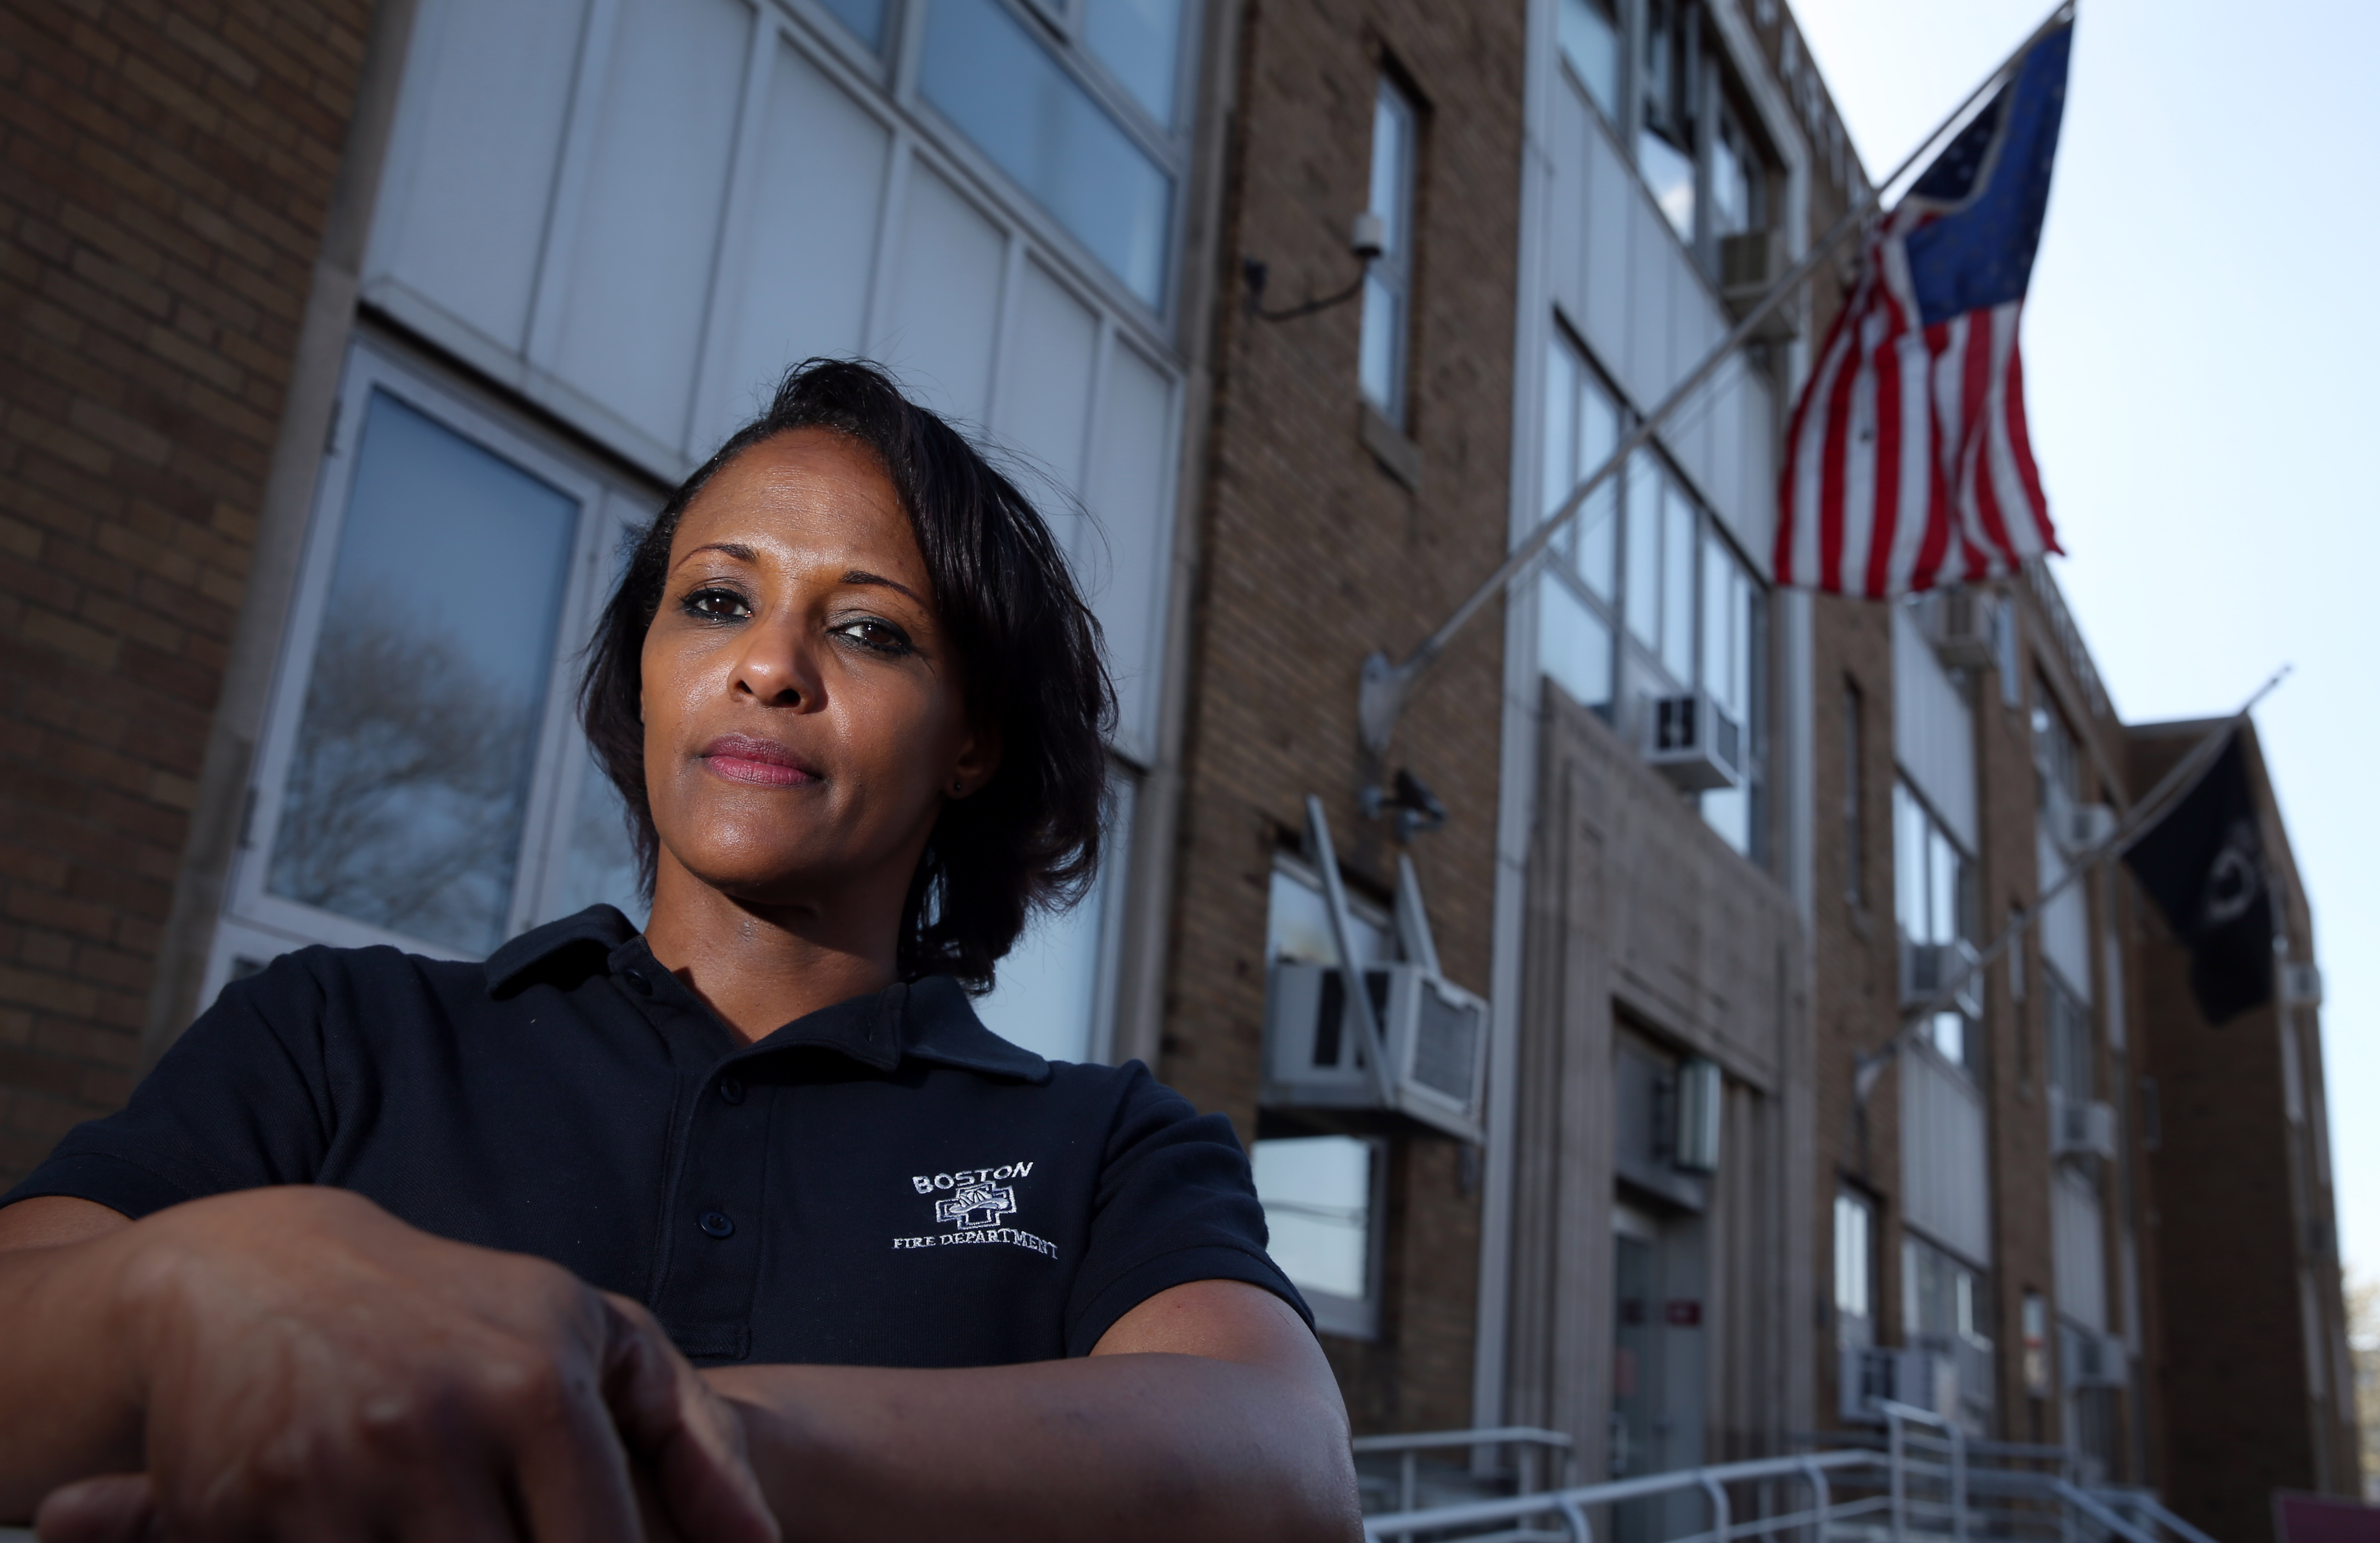 What Discipline Looks Like At Boston >> Boston Has Just 16 Female Firefighters Several Say Discrimination